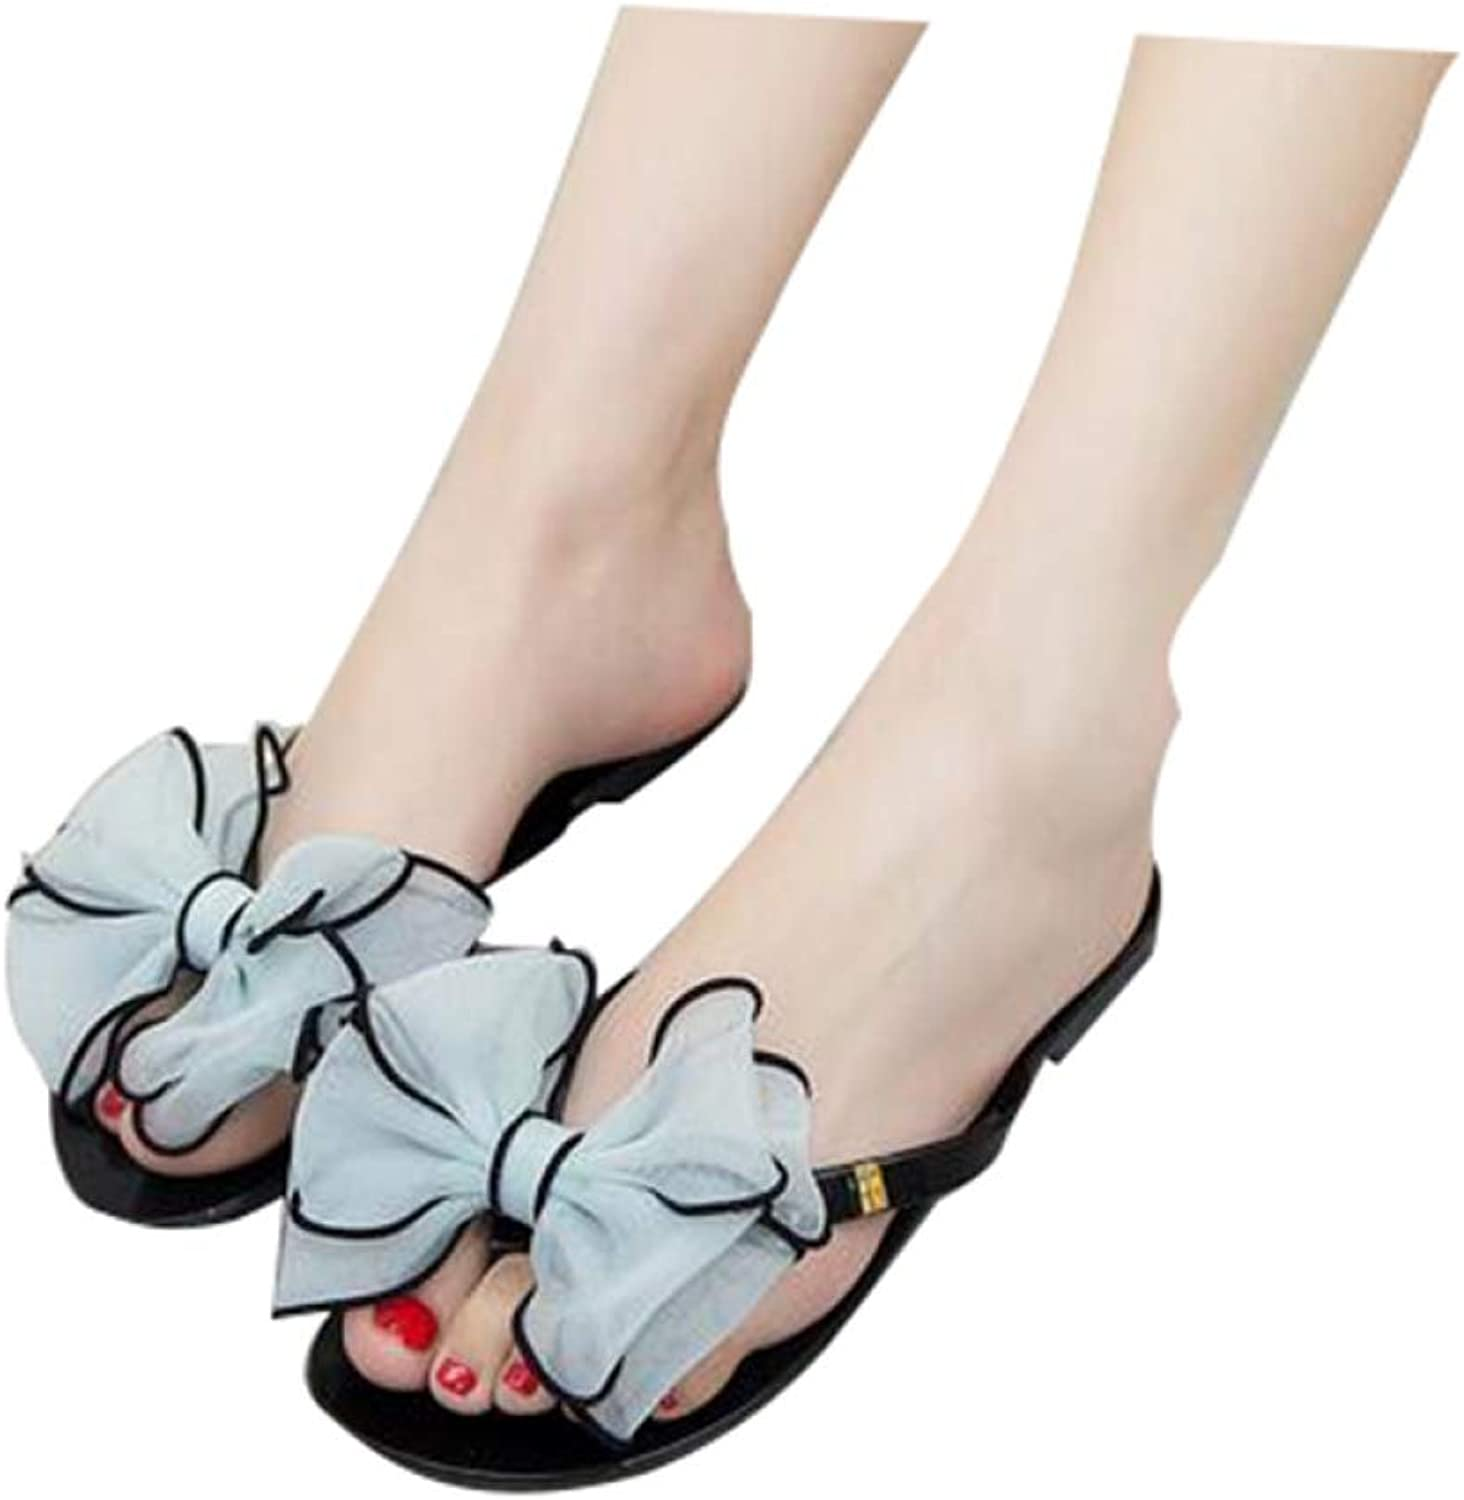 T-JULY Bowtie Flip Flops Summer Style Gladiator Slippers Slip On Beach shoes Woman Sweet Slippers Women shoes